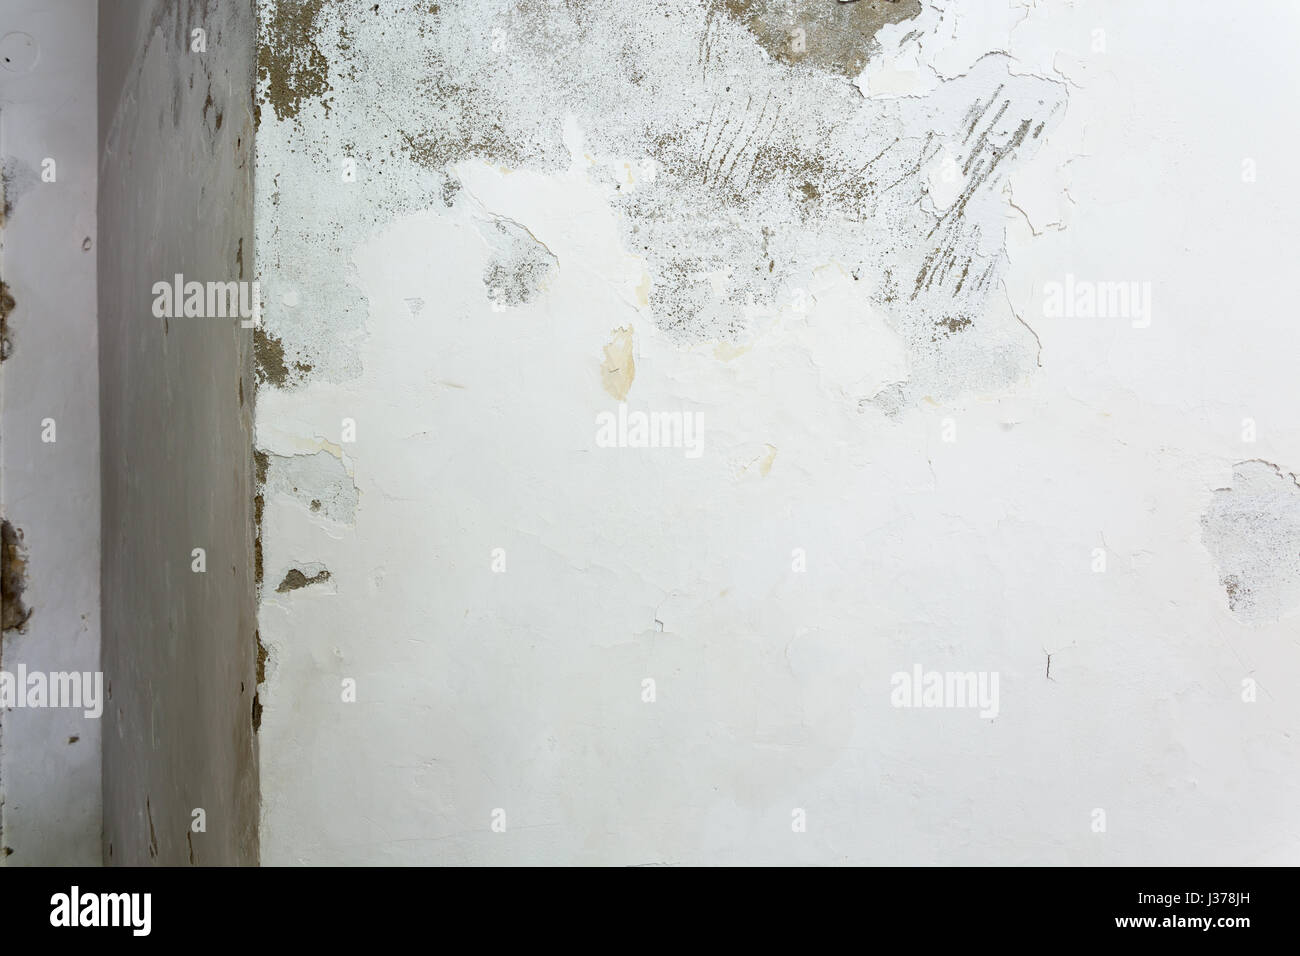 peeling paint wall interior stockfotos peeling paint wall interior bilder seite 2 alamy. Black Bedroom Furniture Sets. Home Design Ideas